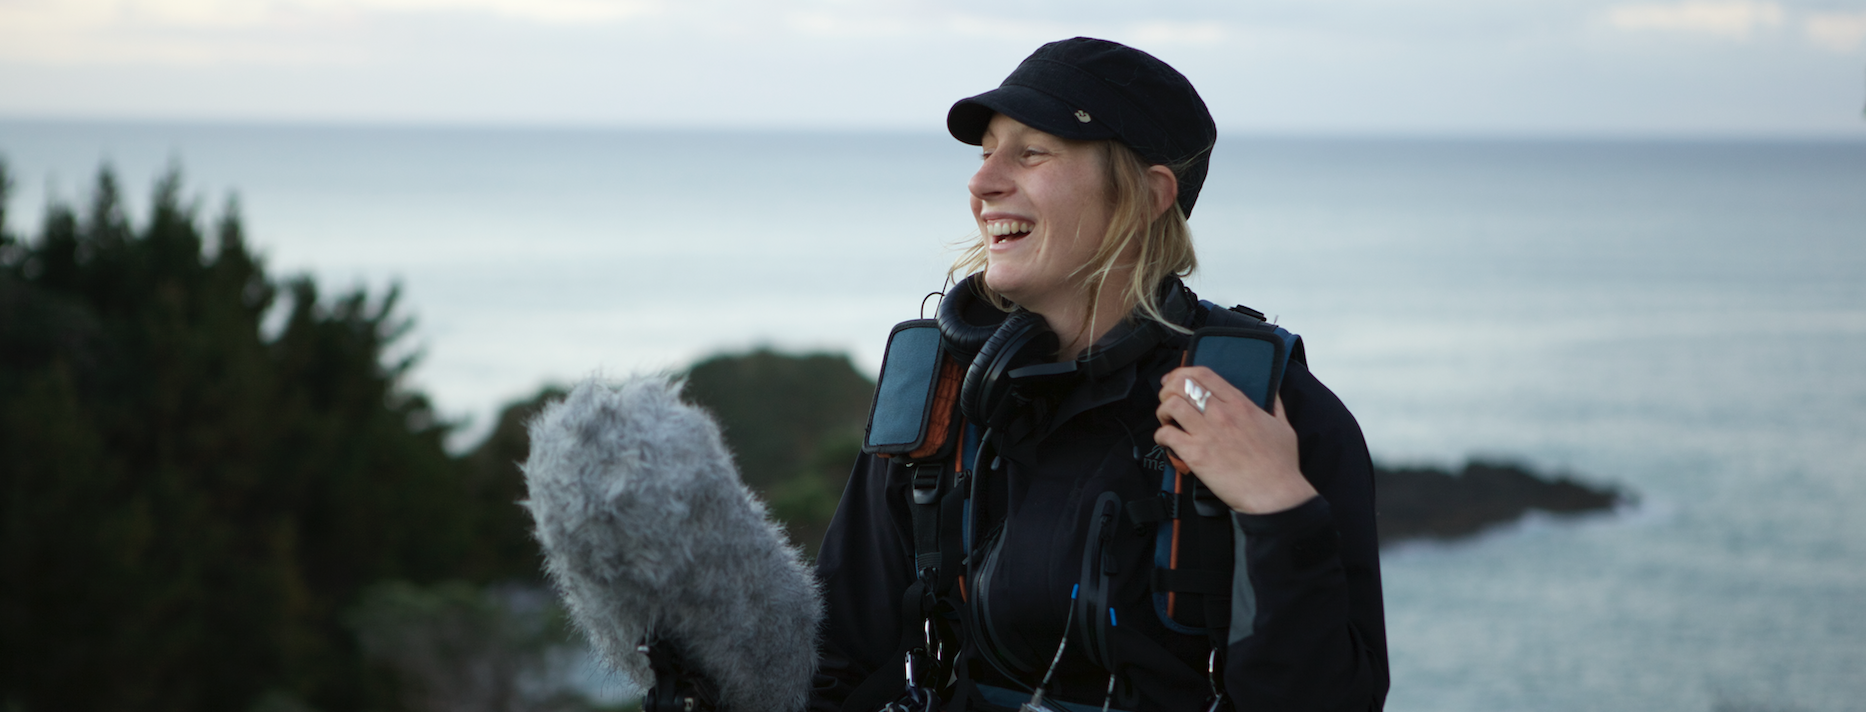 women adventure filmmaking